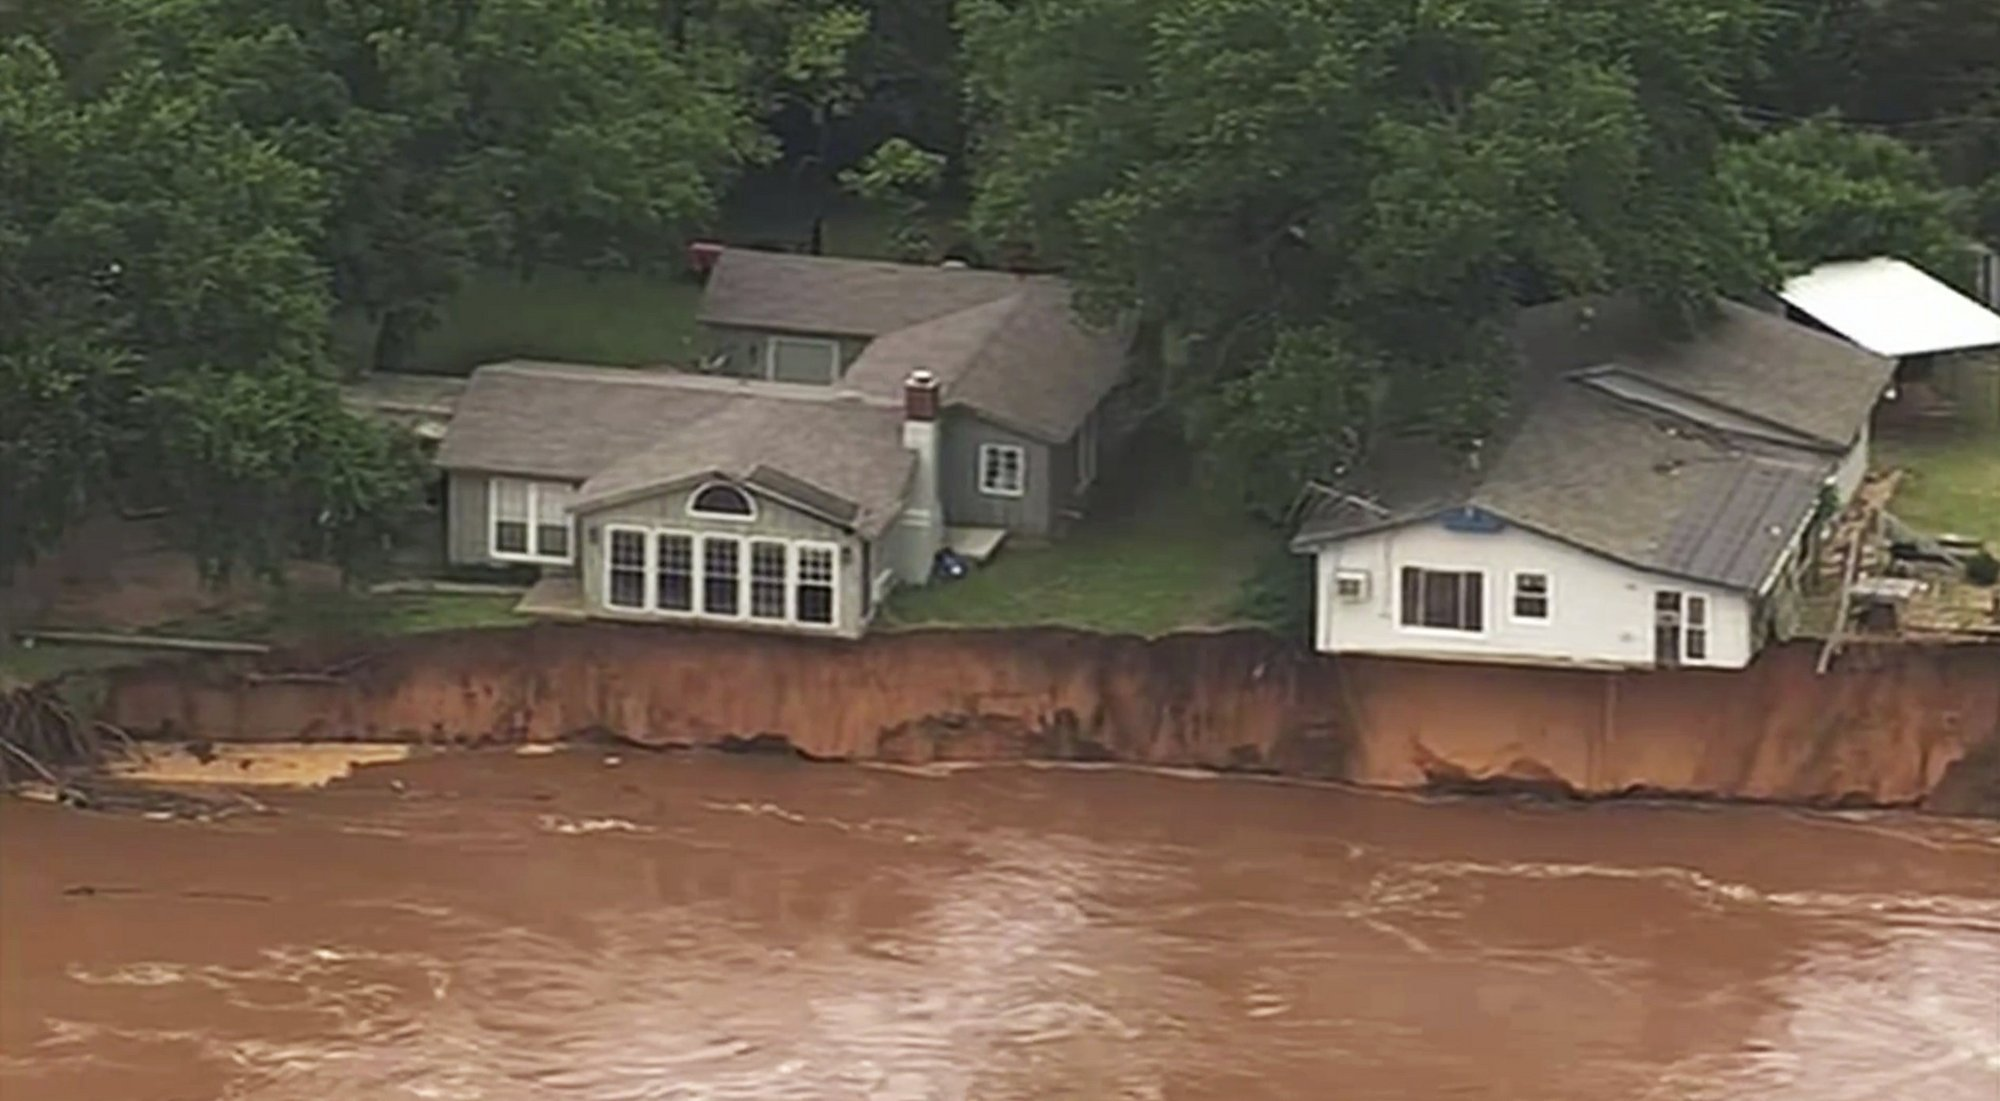 WATCH: Runaway barges threaten dam in another day of Midwest storms